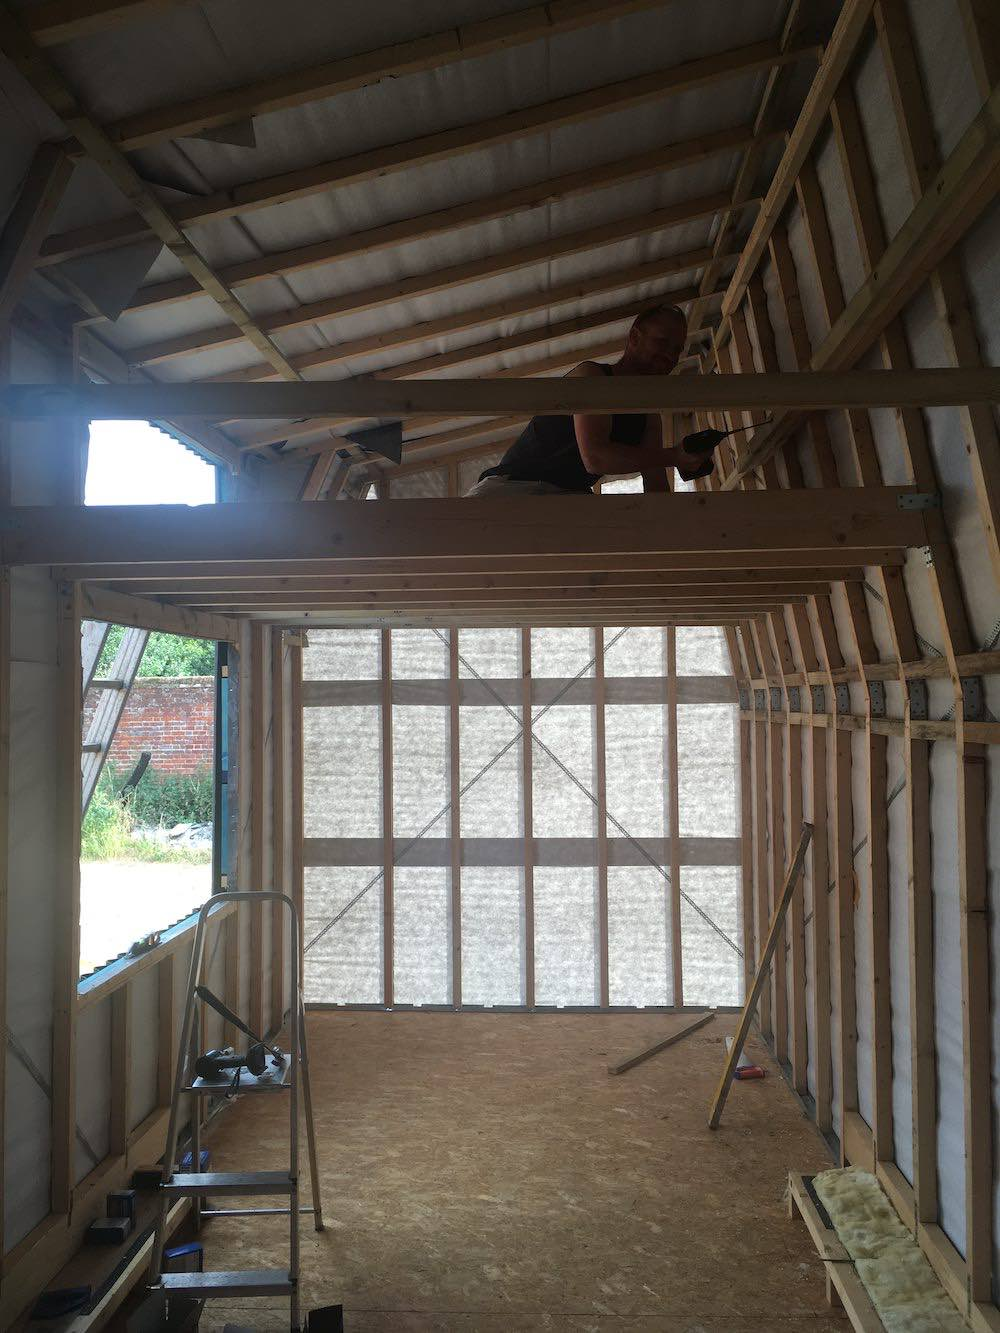 On the inside you begin to see the scale of the project and they space they have created within the tiny house